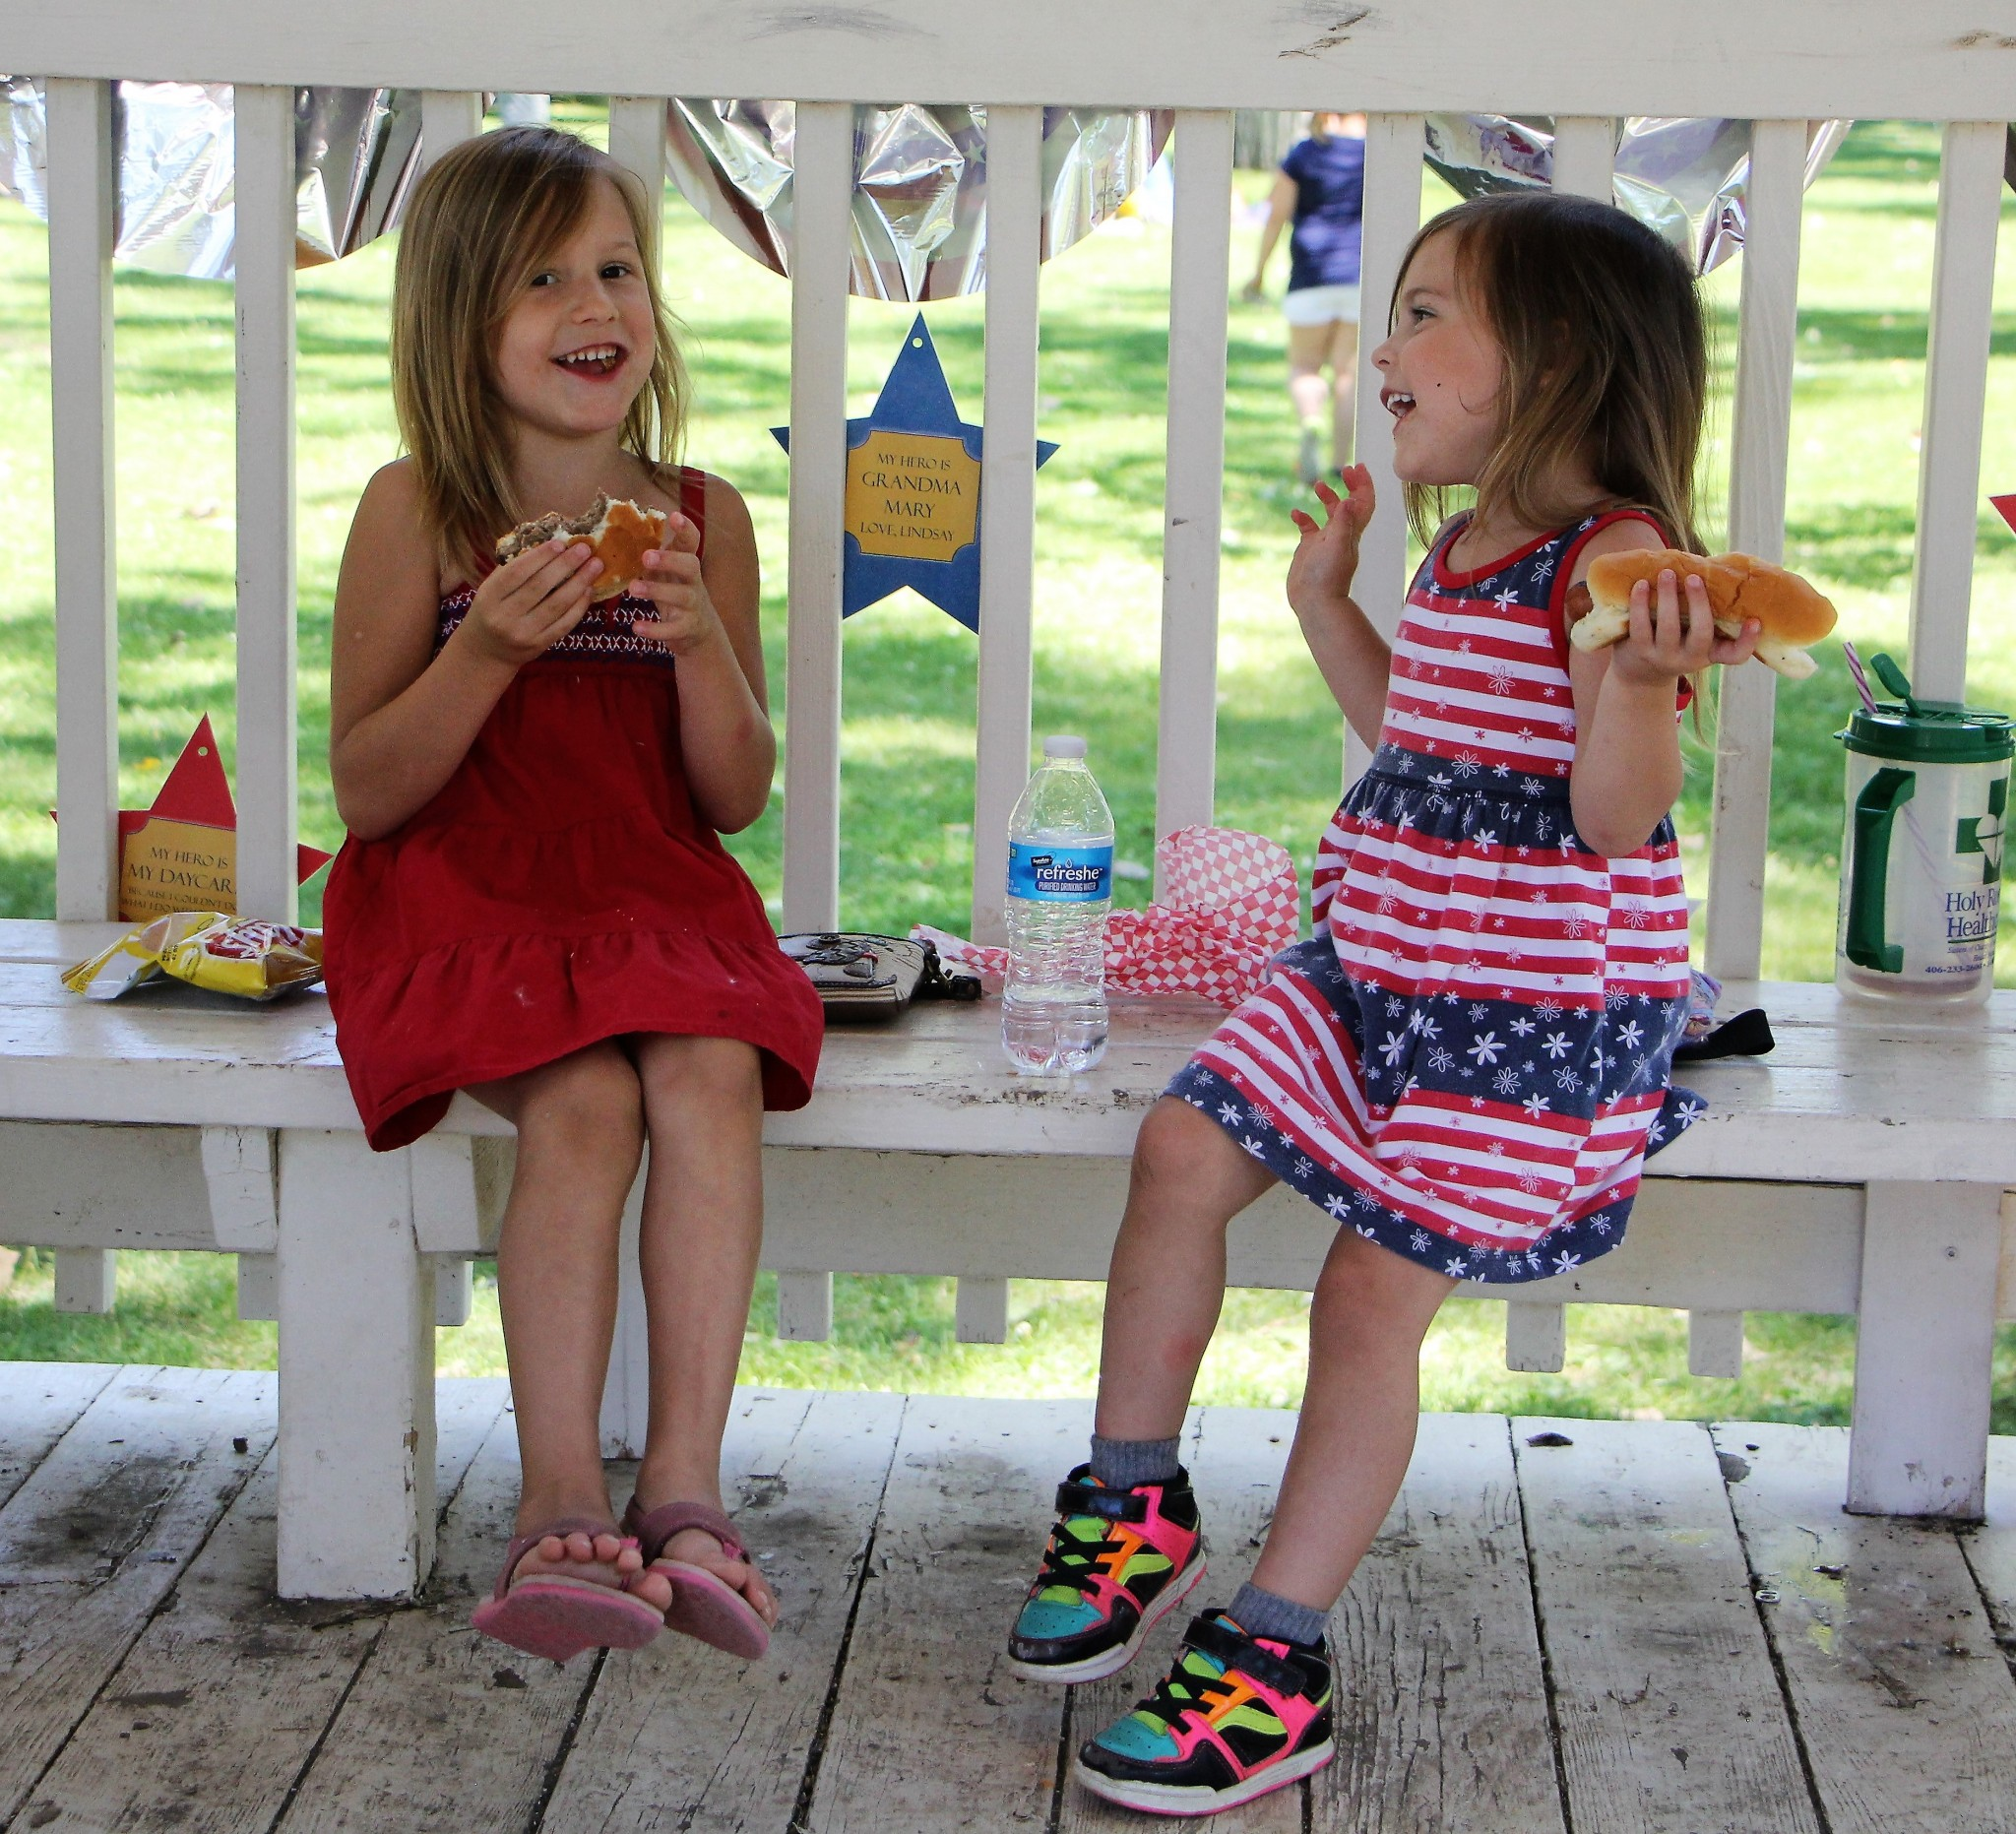 <strong>STAR PHOTOS/Sharon Moore</strong><strong>Melzie Liles, 5, and Tallia Liles, 3, eat lunch from the Wake Up and Lace Up barbeque that was set up in Riverside Park after the 4th of July Parade on Wednesday. Melzie enjoyed a burger while Tallia enjoyed a hot dog.</strong>